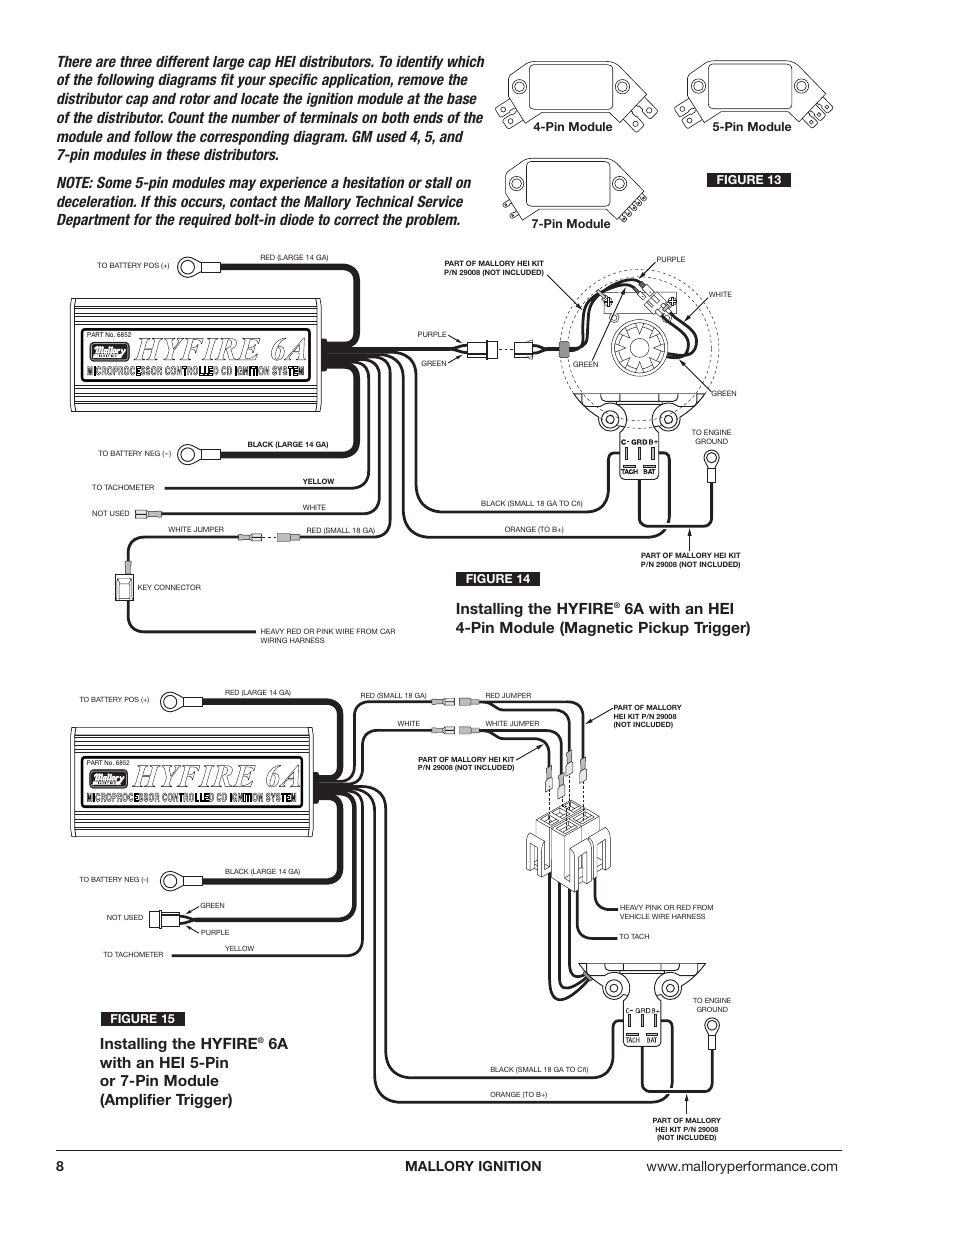 Mallory Ignition Wiring Diagram View Diagram